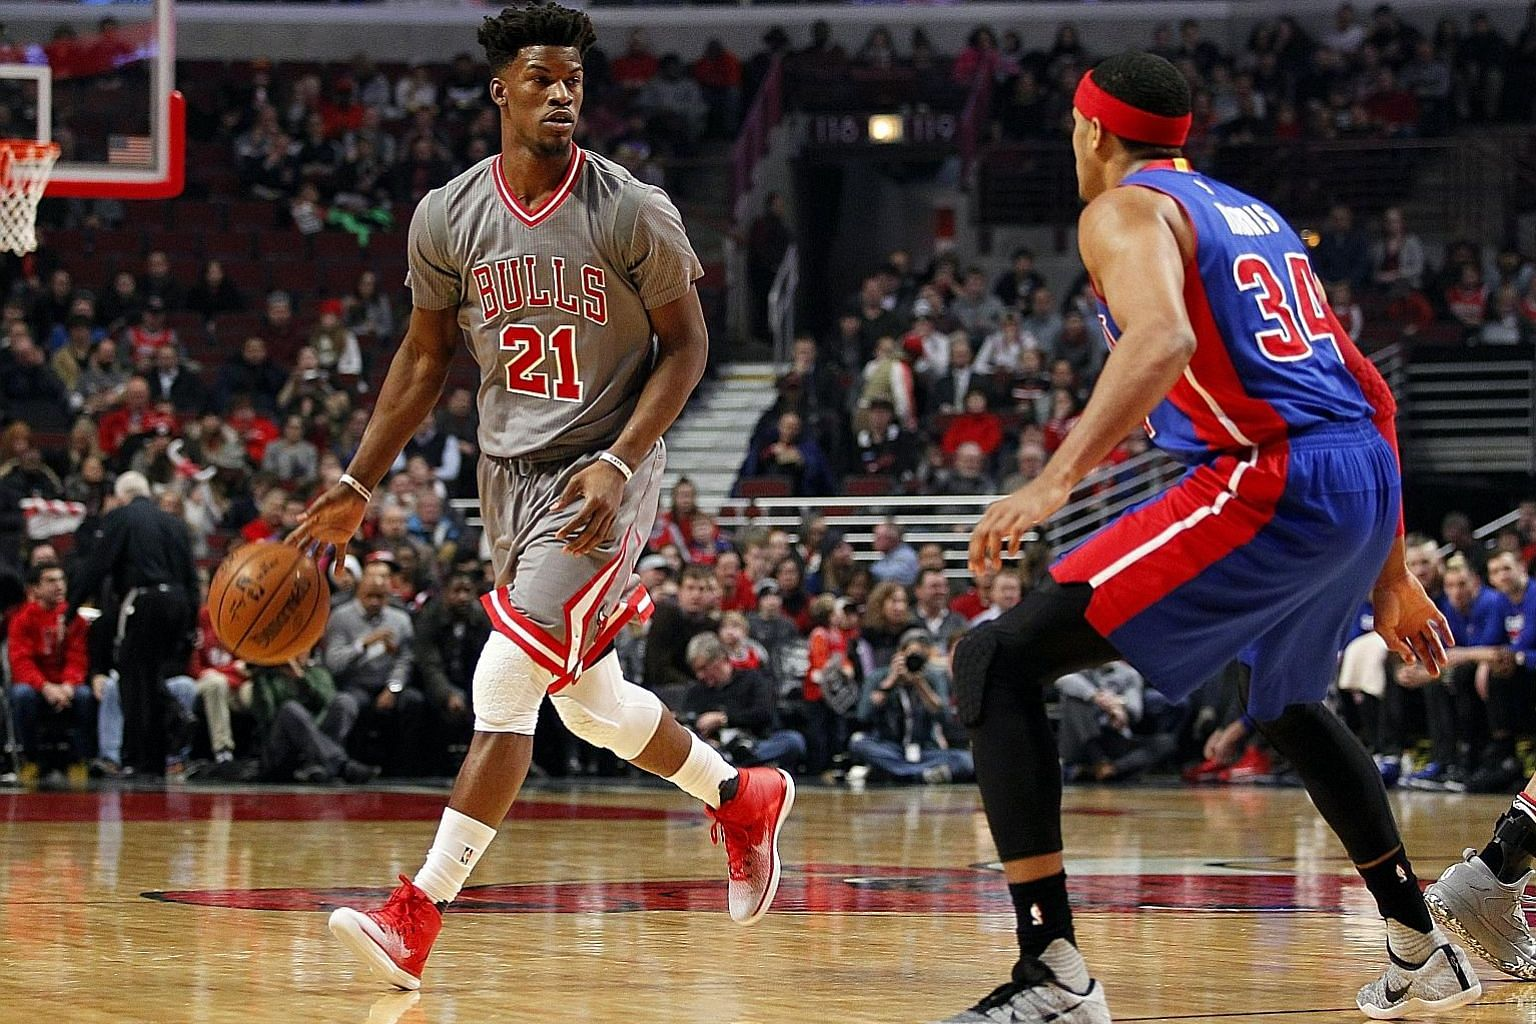 Chicago forward Jimmy Butler looking to pass to a team-mate while Detroit forward Tobias Harris guards him during their NBA game at United Centre. Detroit crashed to their third straight loss in a 113-82 thrashing.